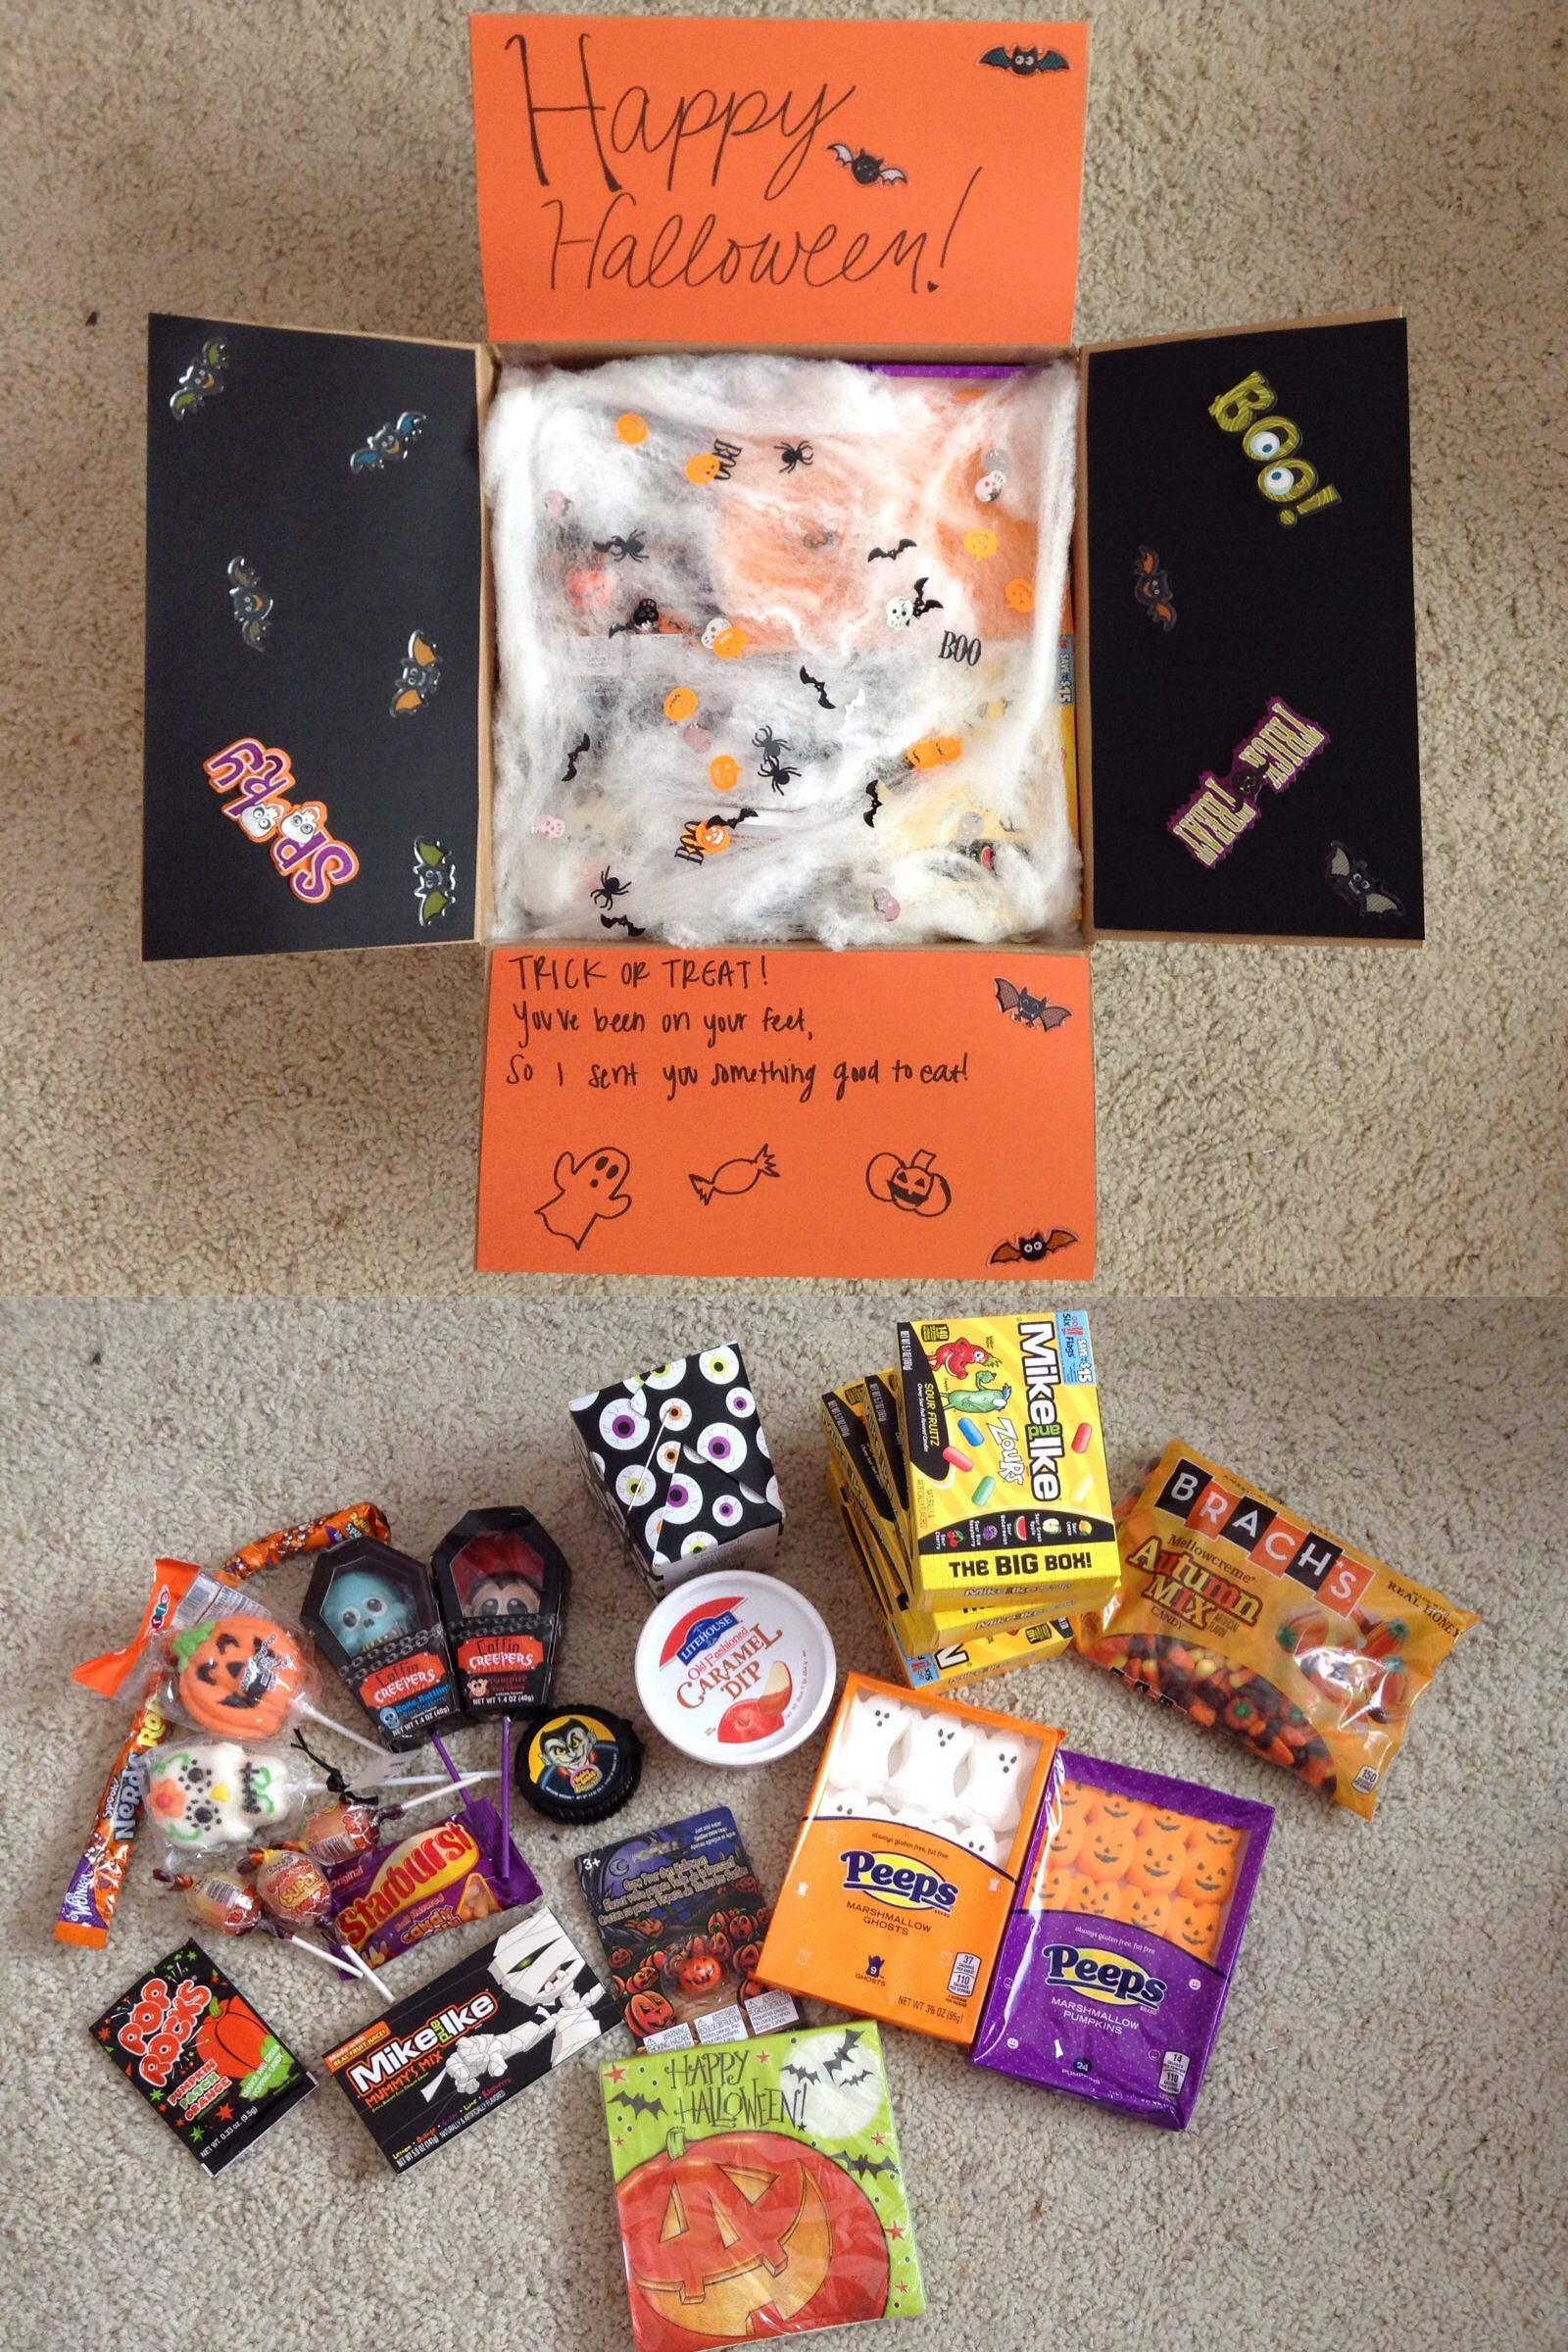 35 Totally Spooktacular Halloween Care Package Ideas for College Students